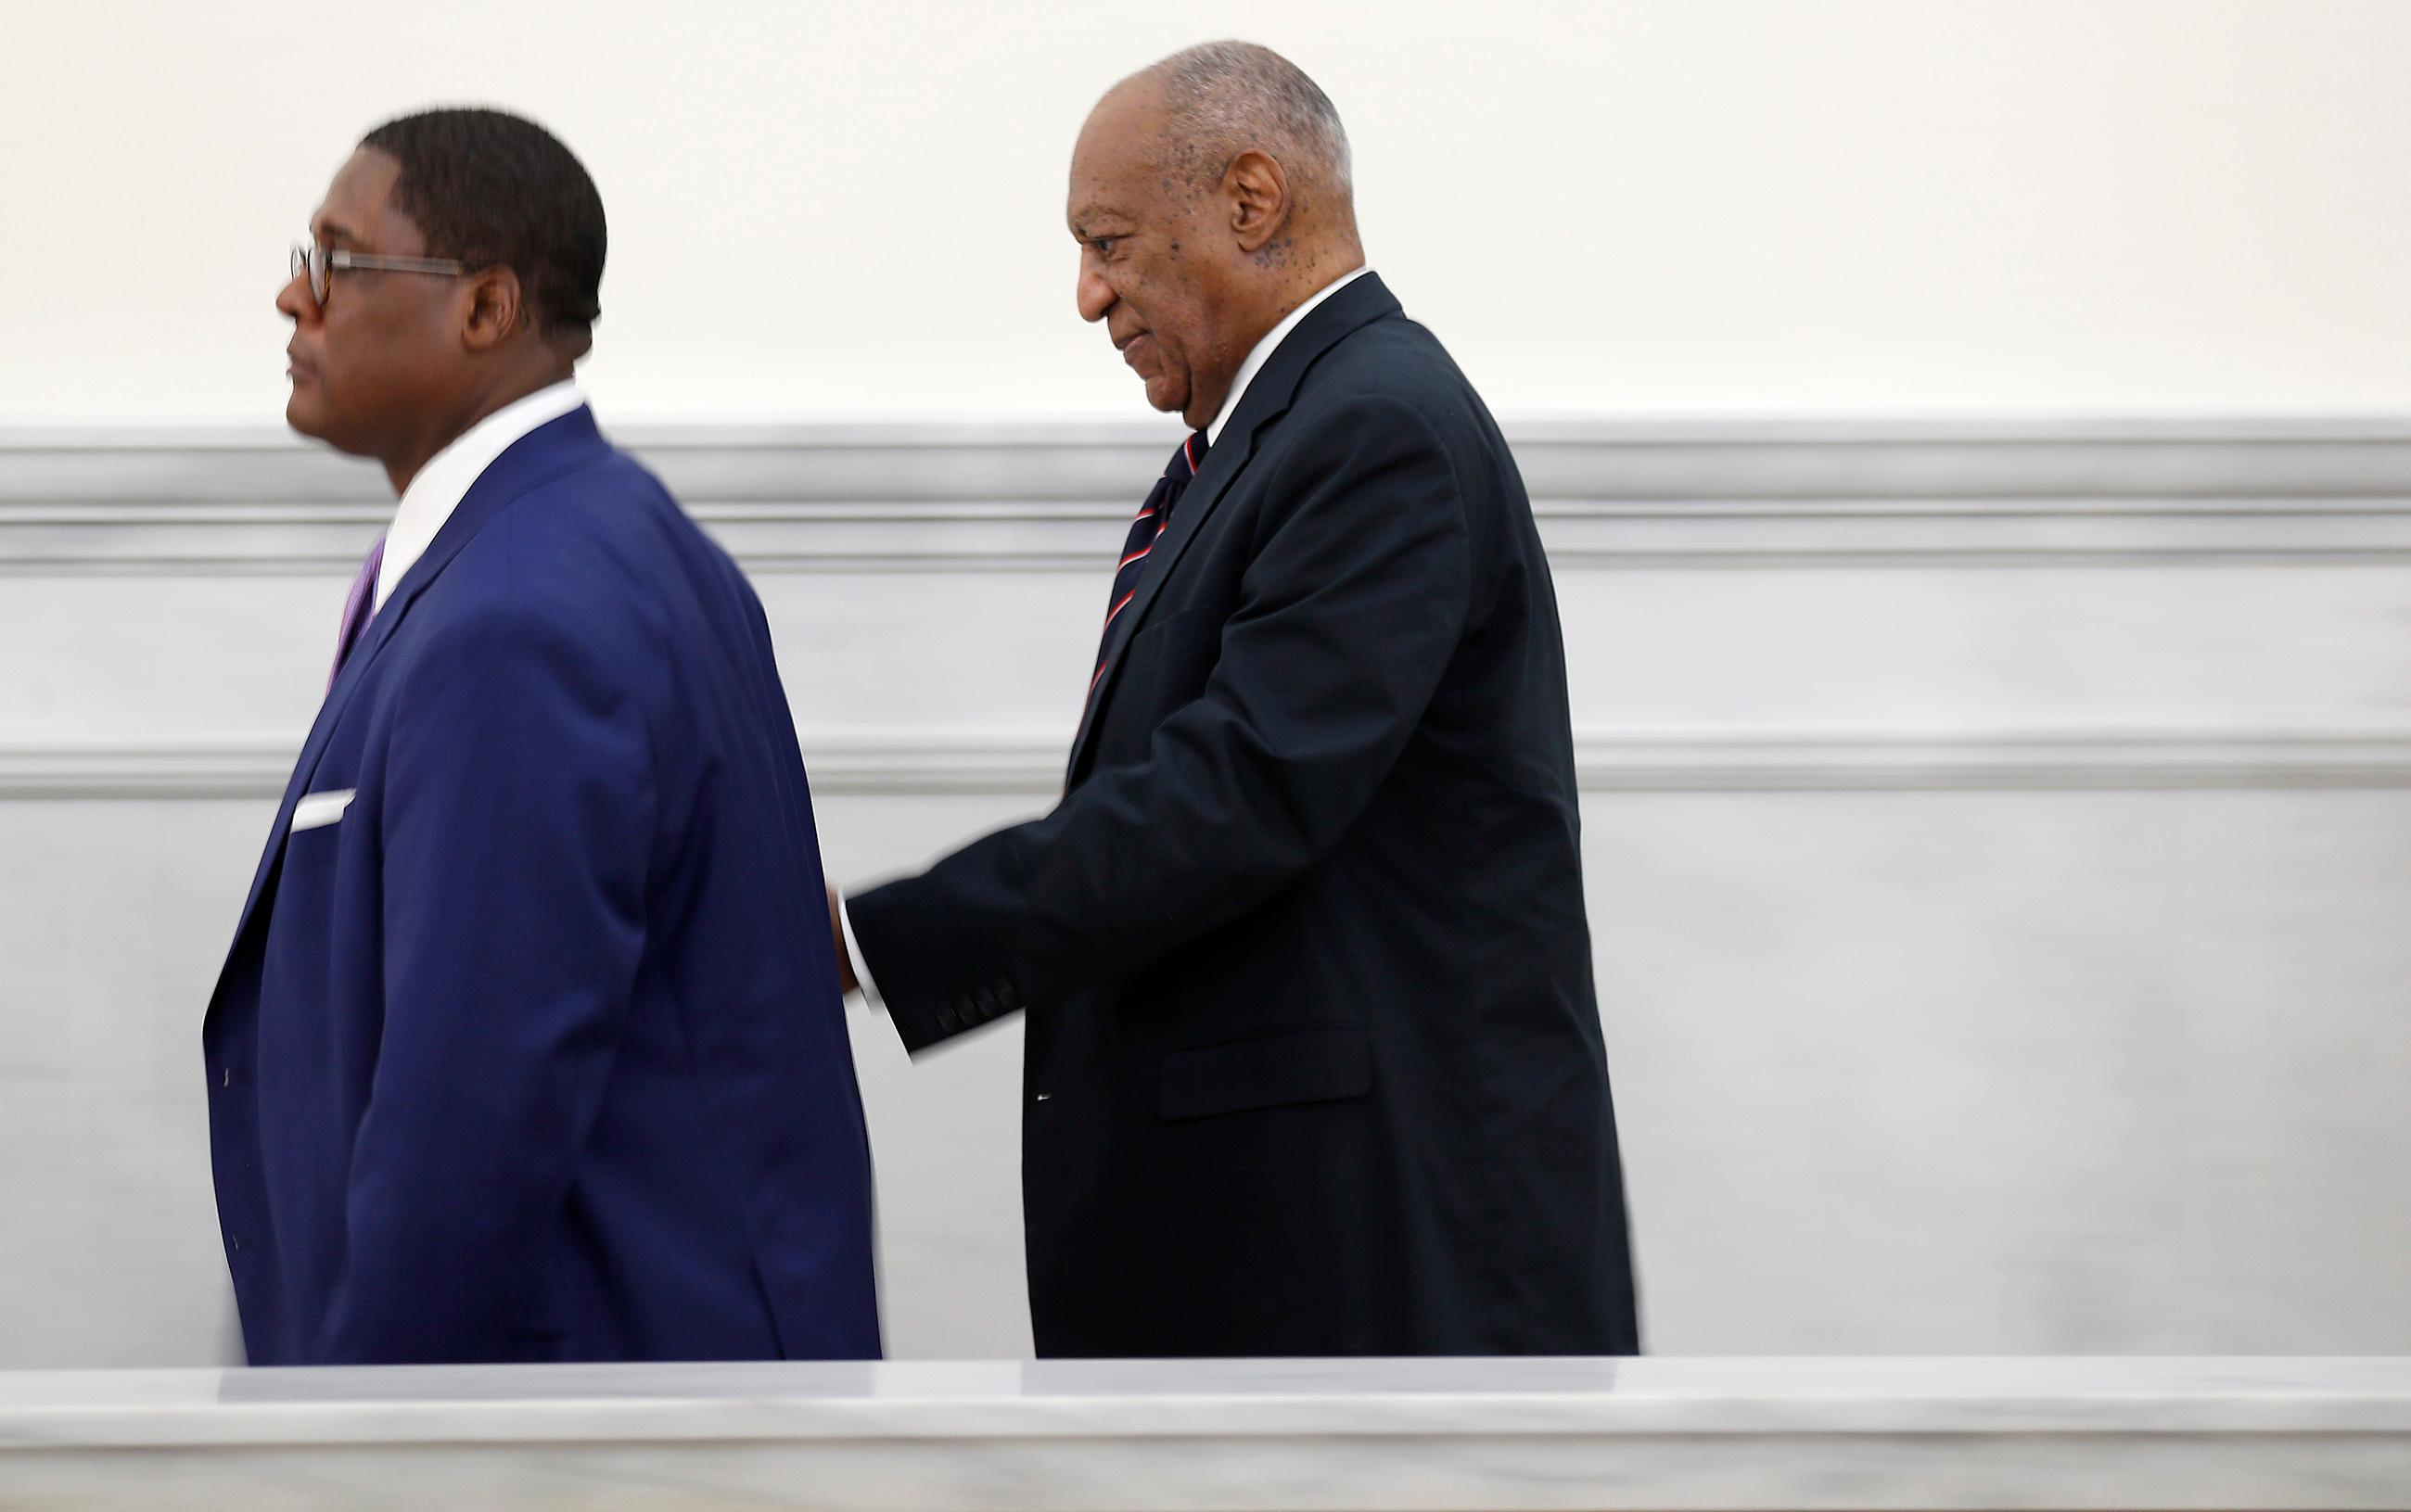 Andrew Wyatt, left, leads Bill Cosby, right, back to the courtroom at the Montgomery County Courthouse during Cosby's sexual assault trial in Norristown, Pa., Monday, June 12, 2017. (David Maialetti/The Philadelphia Inquirer via AP, Pool)